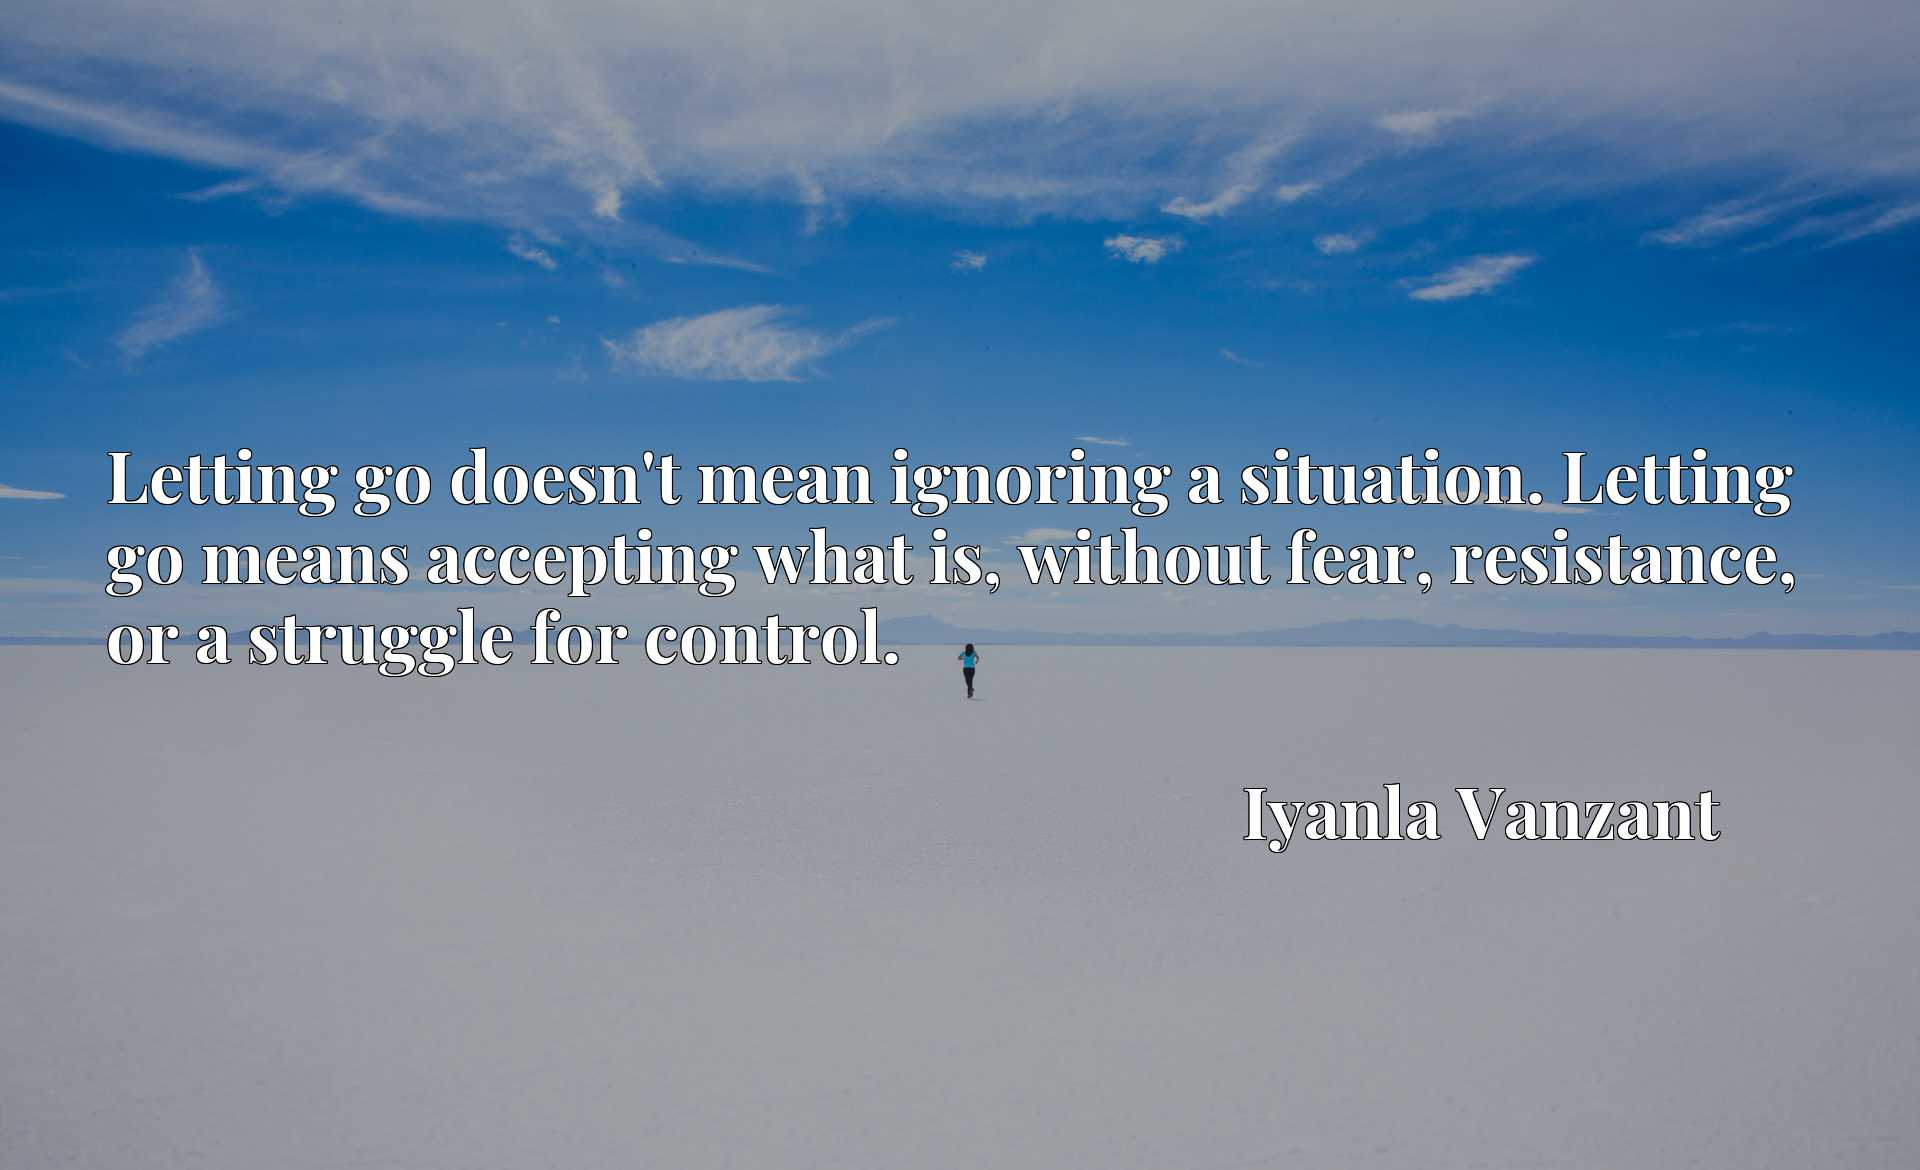 Letting go doesn't mean ignoring a situation. Letting go means accepting what is, without fear, resistance, or a struggle for control.